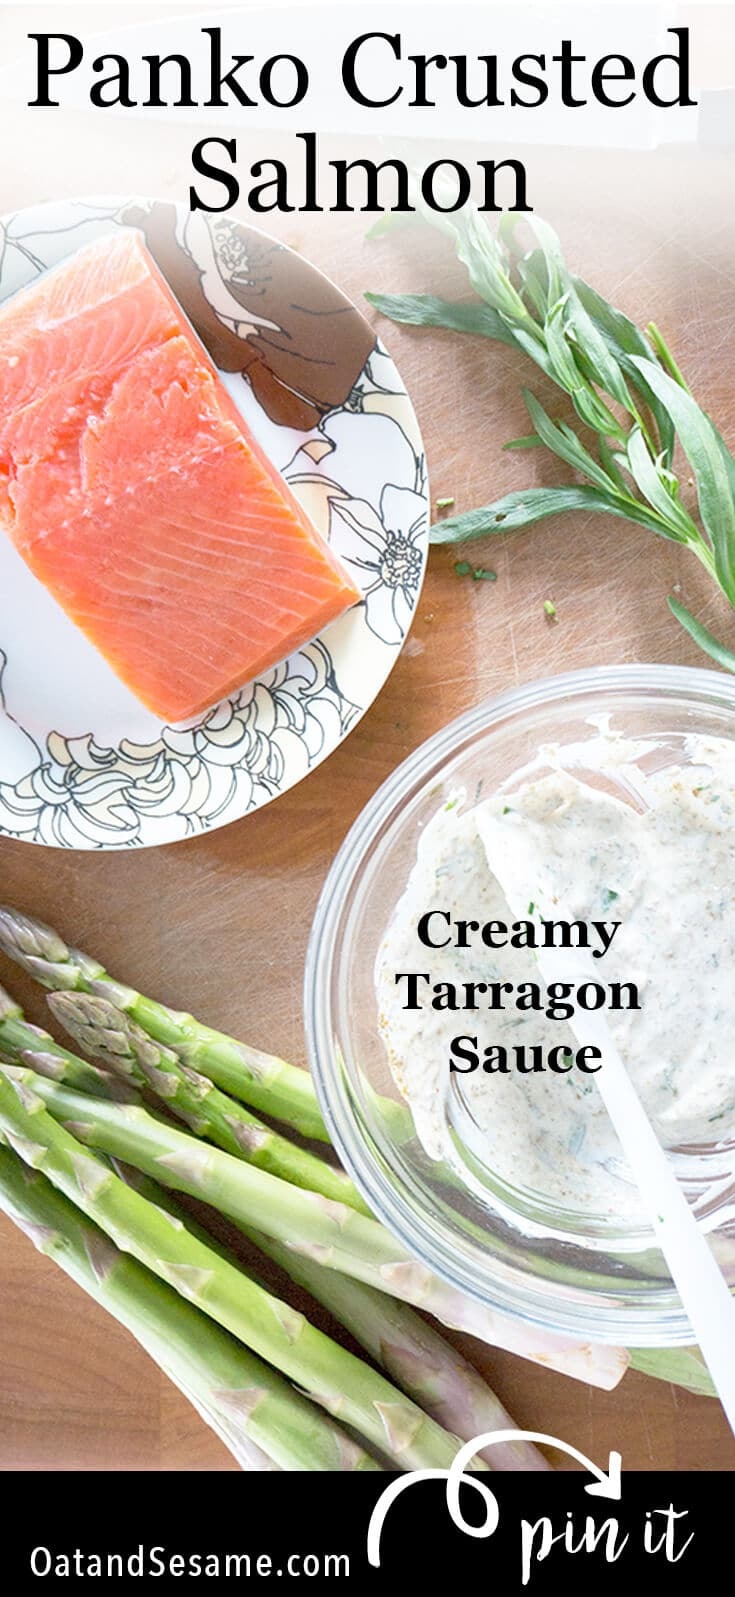 Panko Crusted Salmon with Creamy Tarragon Sauceis herby and creamy with a crisp crumb topping. A fennel sauce topping with fresh tarragon is amazing! | #SALMON | #FISH | #DINNER | MARINADE | #TARRAGON | #Recipes at OatandSesame.com